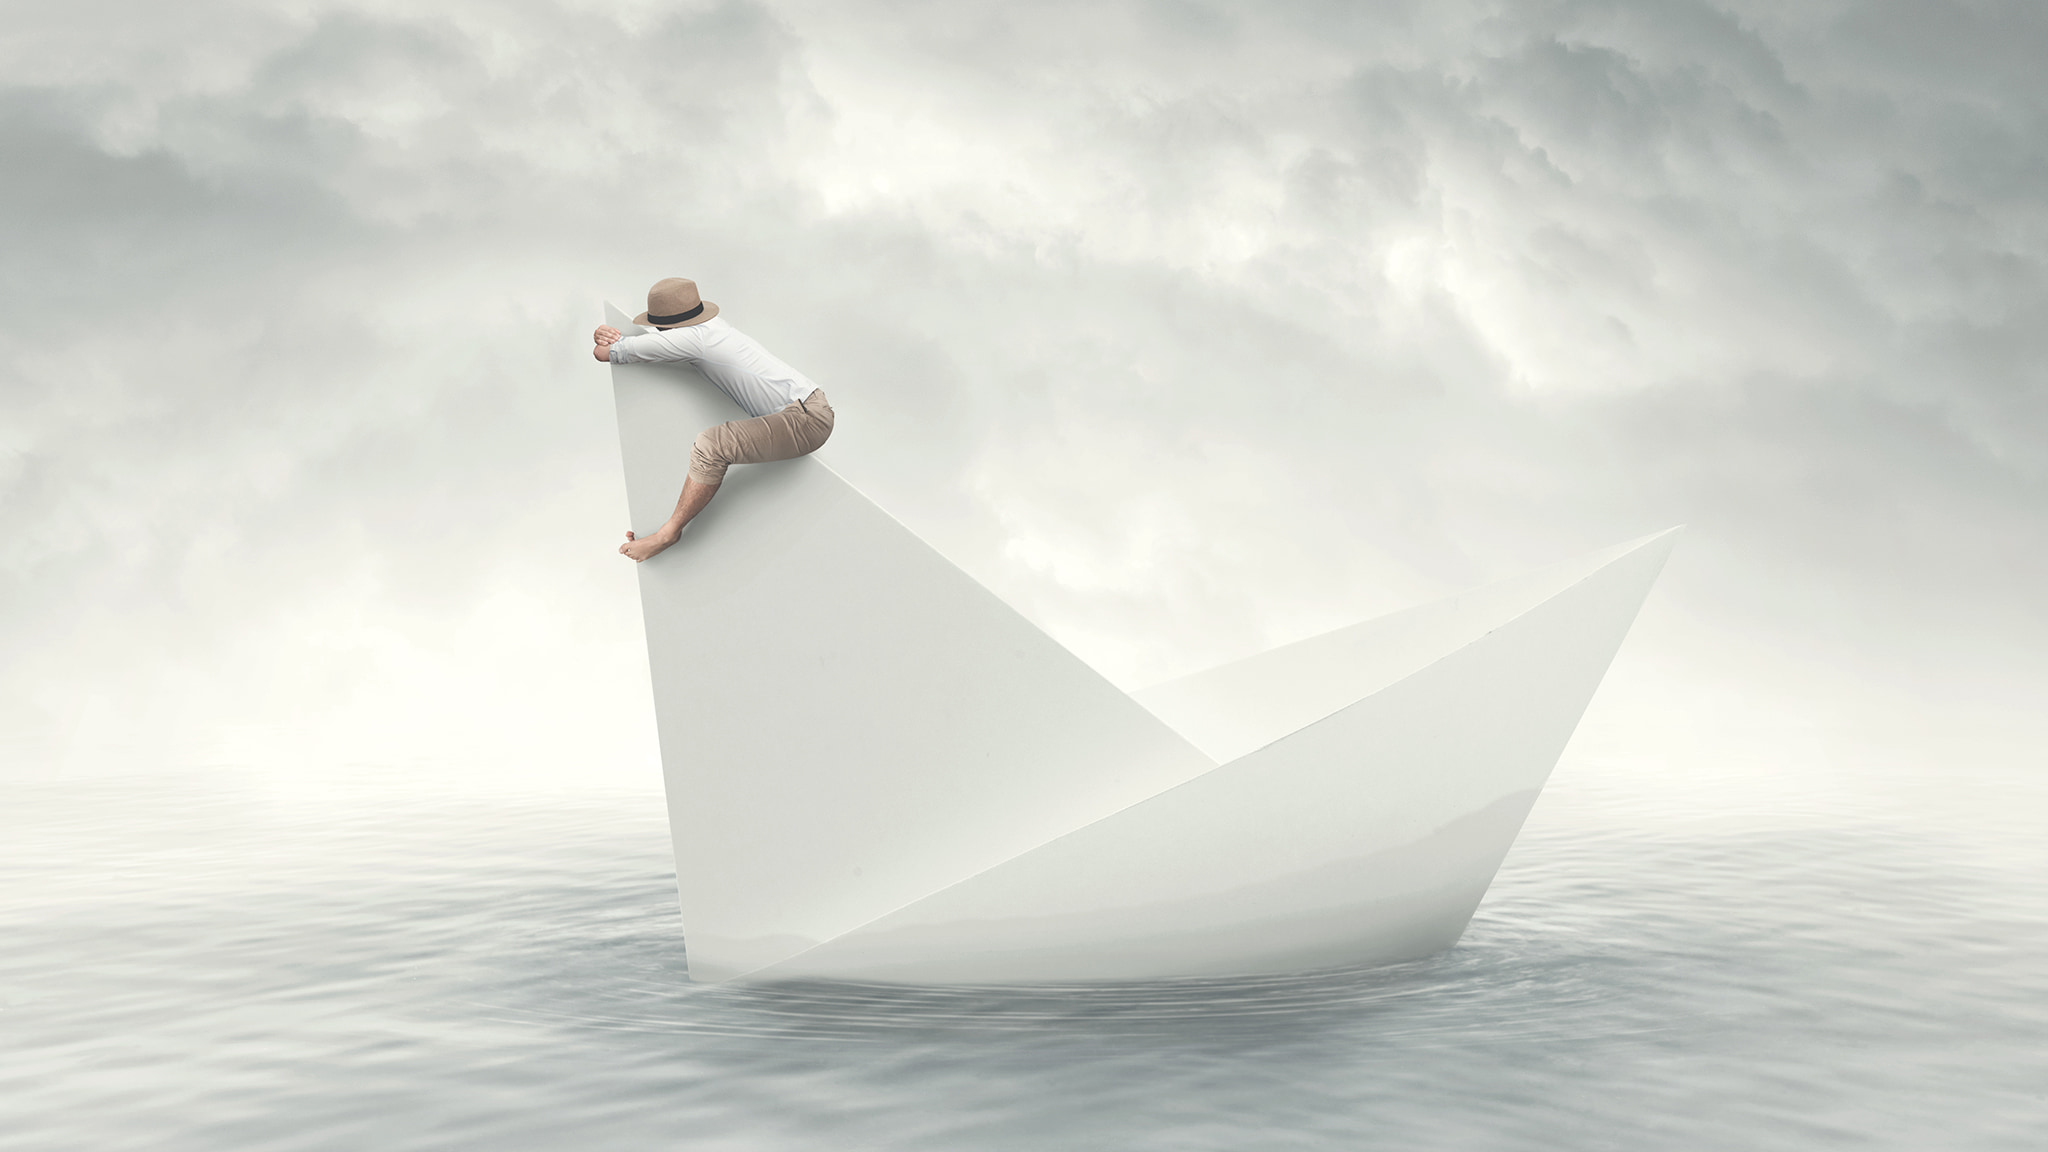 A Conceptual Image Shows A Paper-Like Sailboat In The Water With A Man Clinging To The Topmost Sail Against A Gray Cloudy Sky